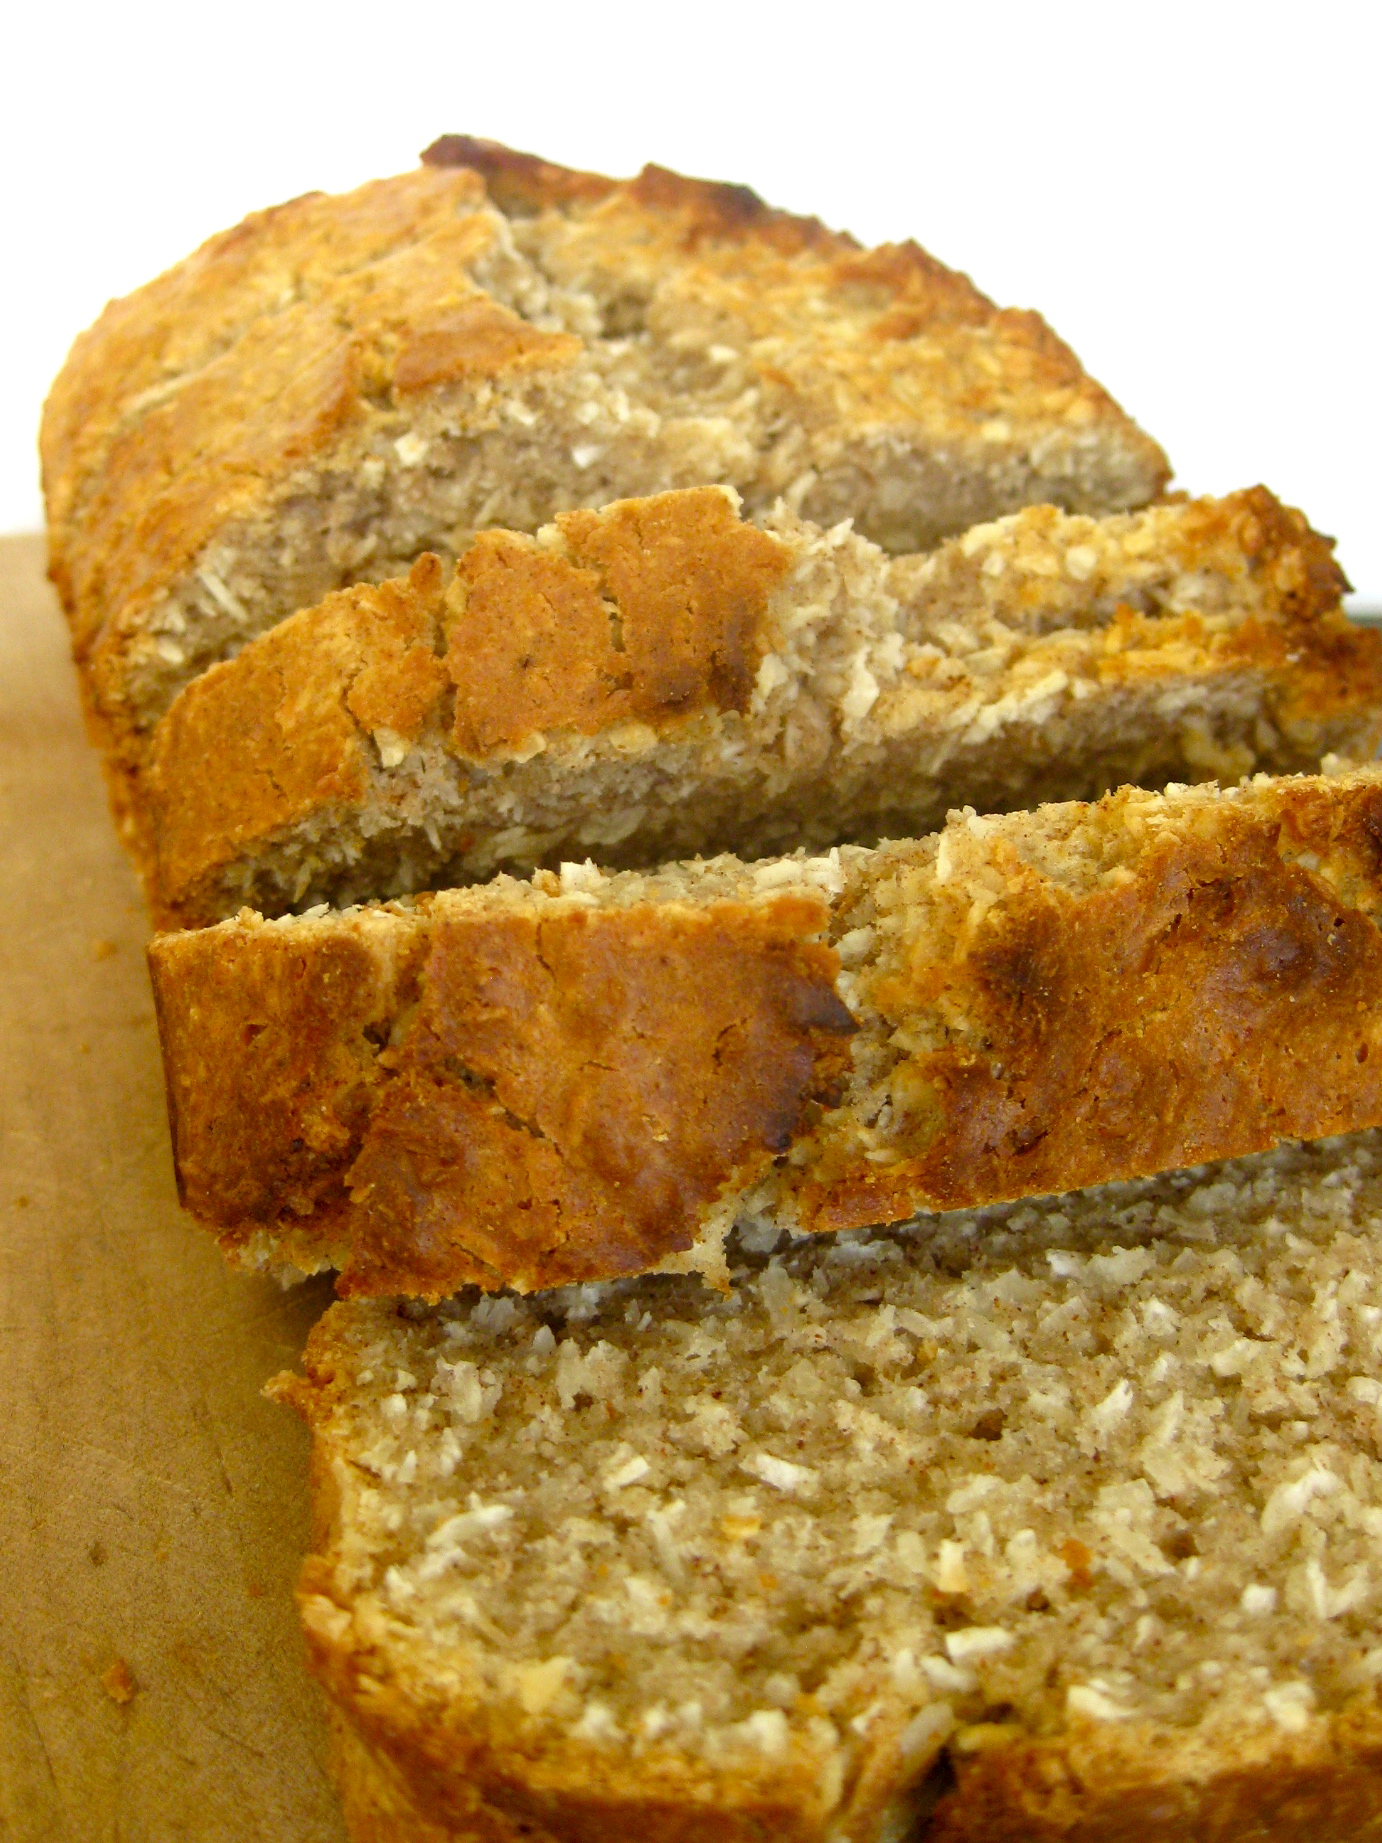 Bill's Jamaican coconut bread